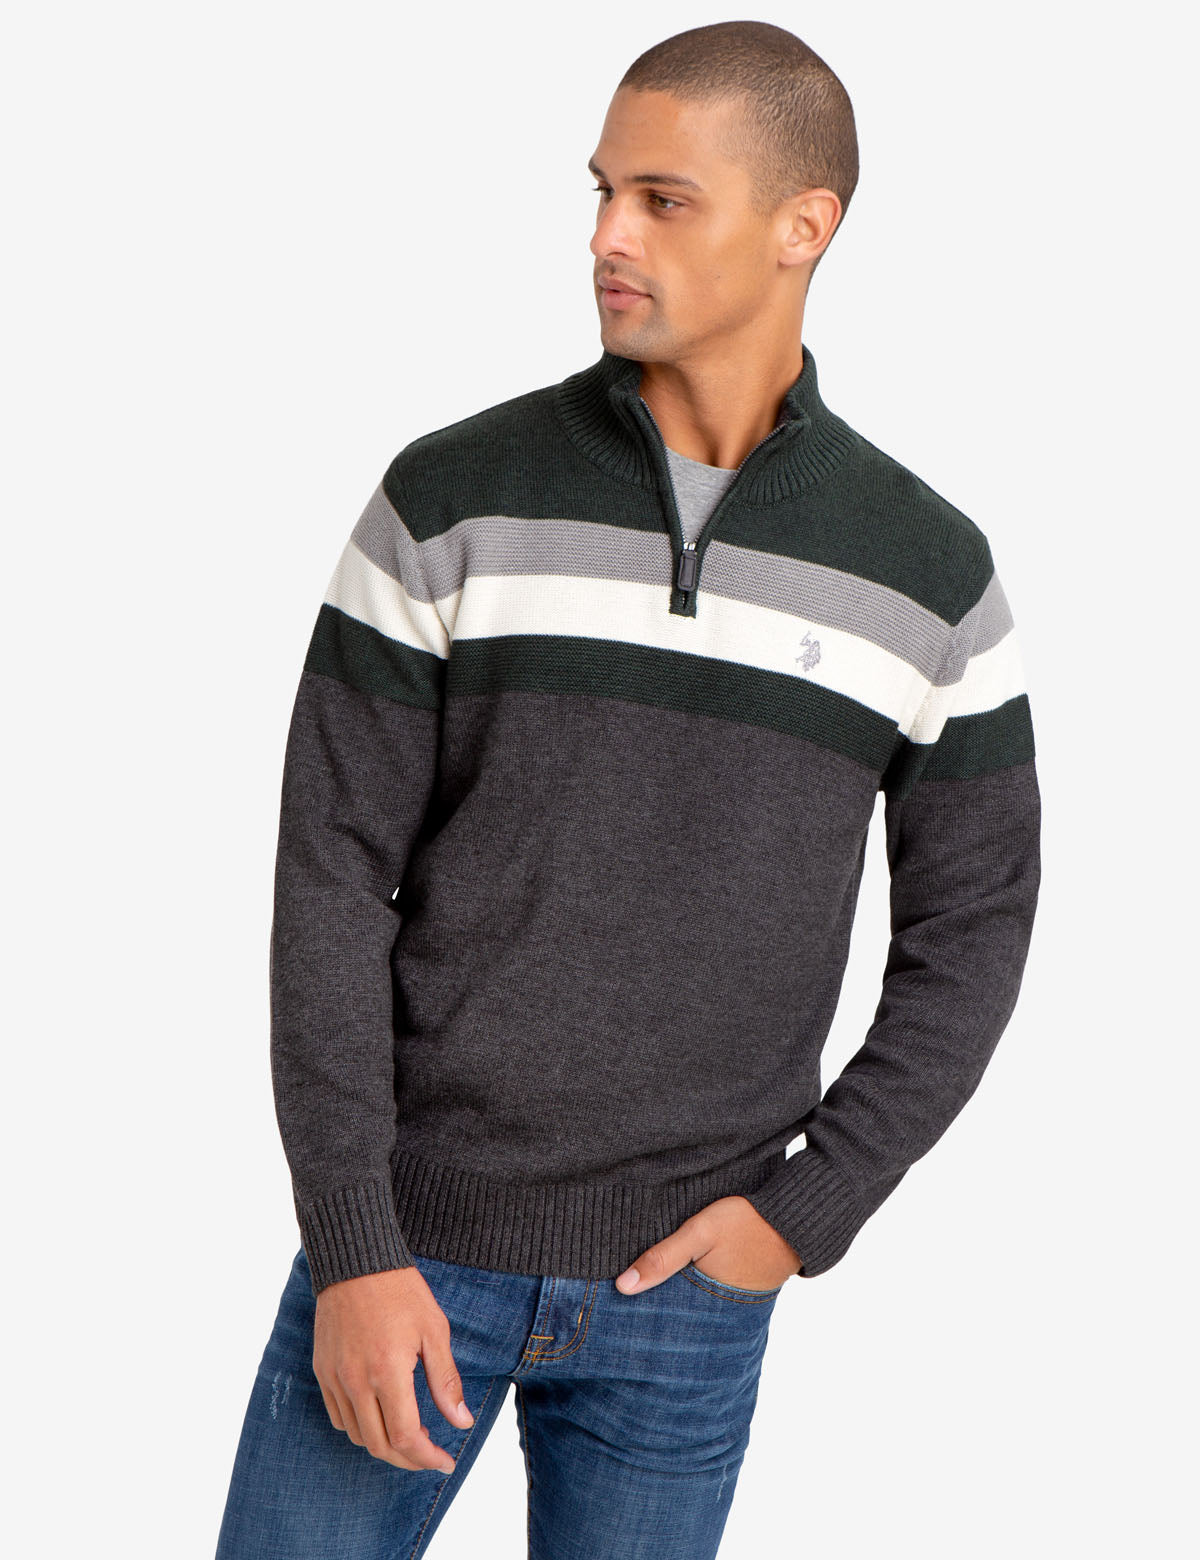 1/4 ZIP STRIPED SWEATER